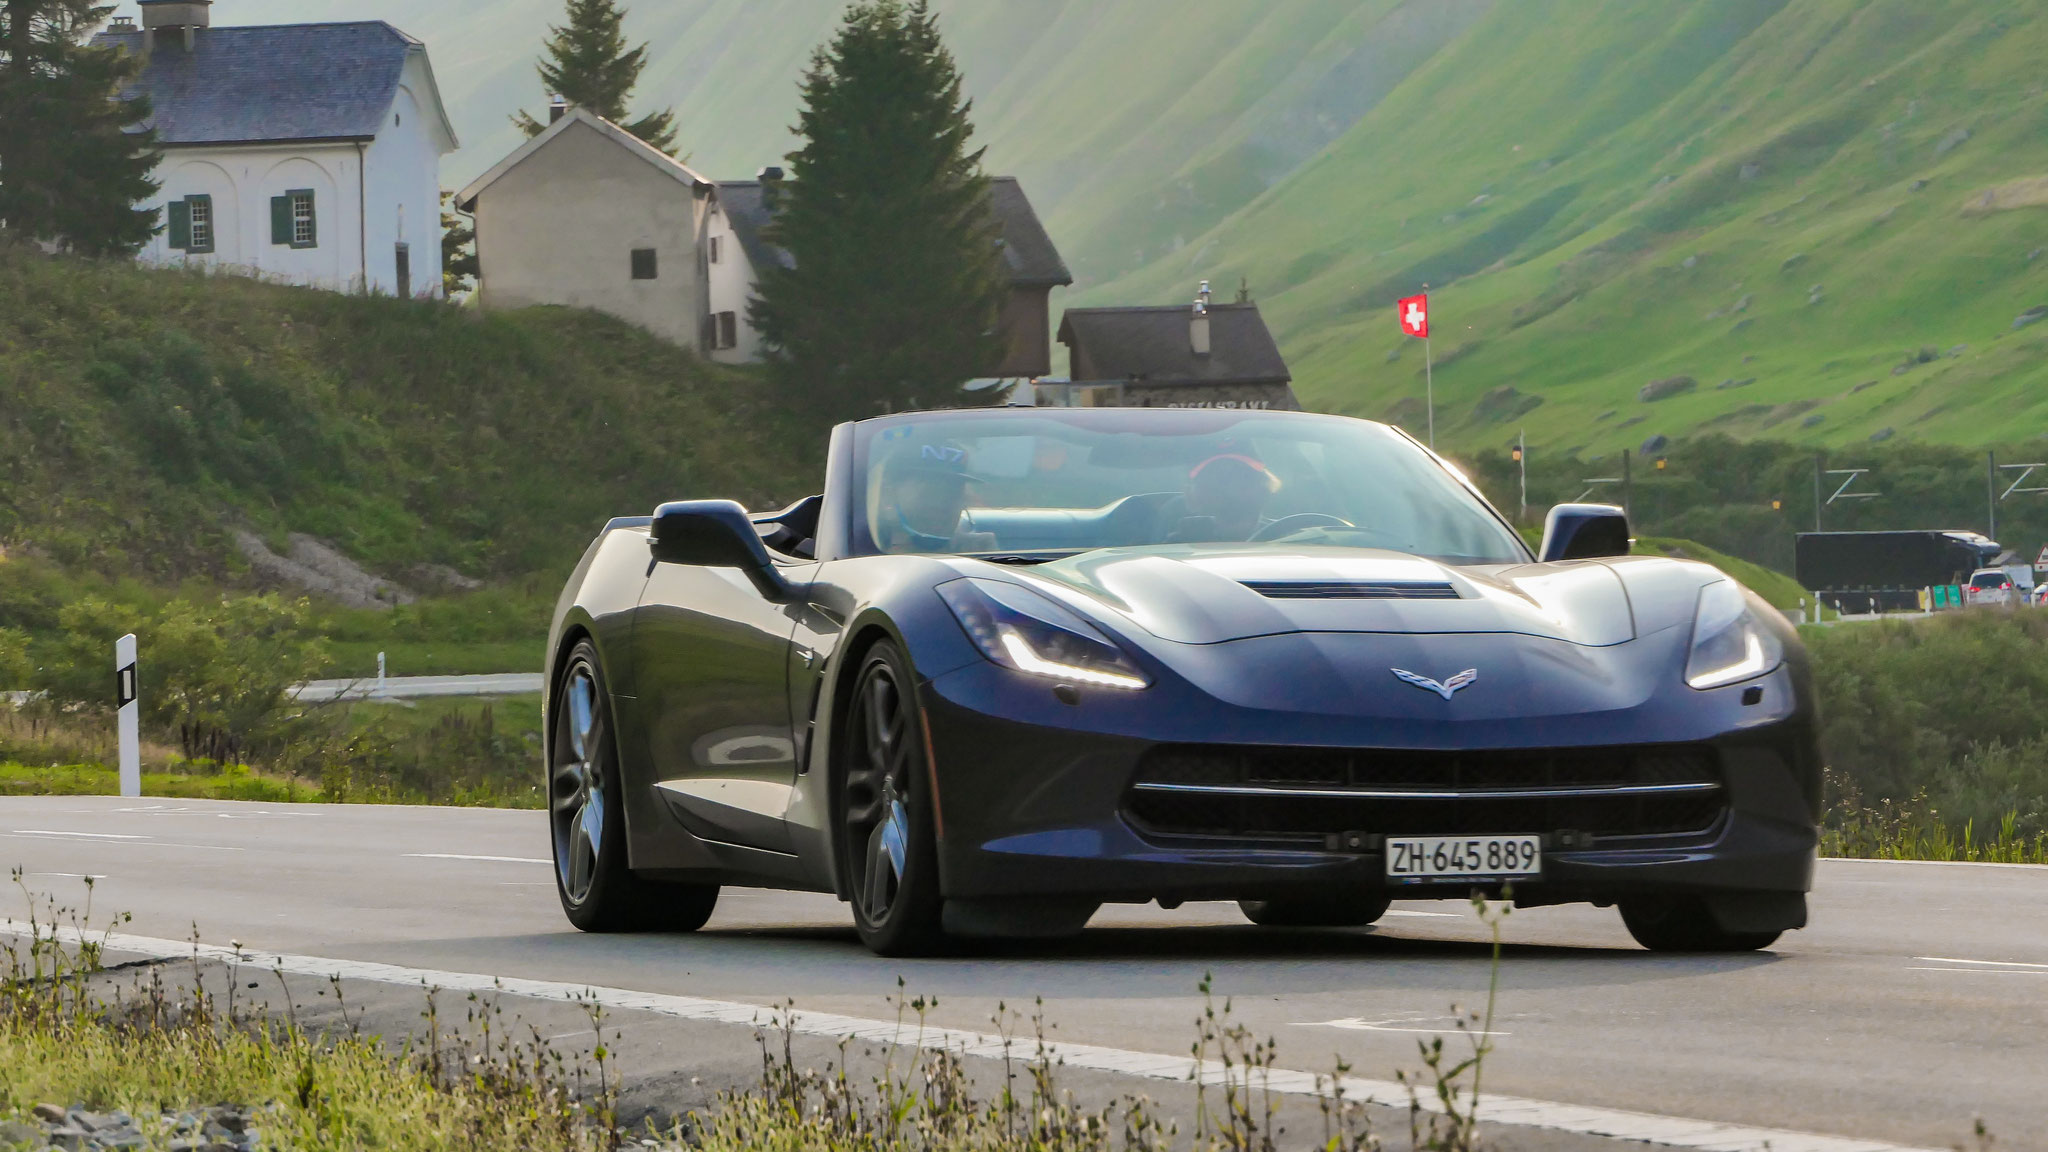 Chevrolet Corvette C7 Stingray - ZH-645889 (CH)